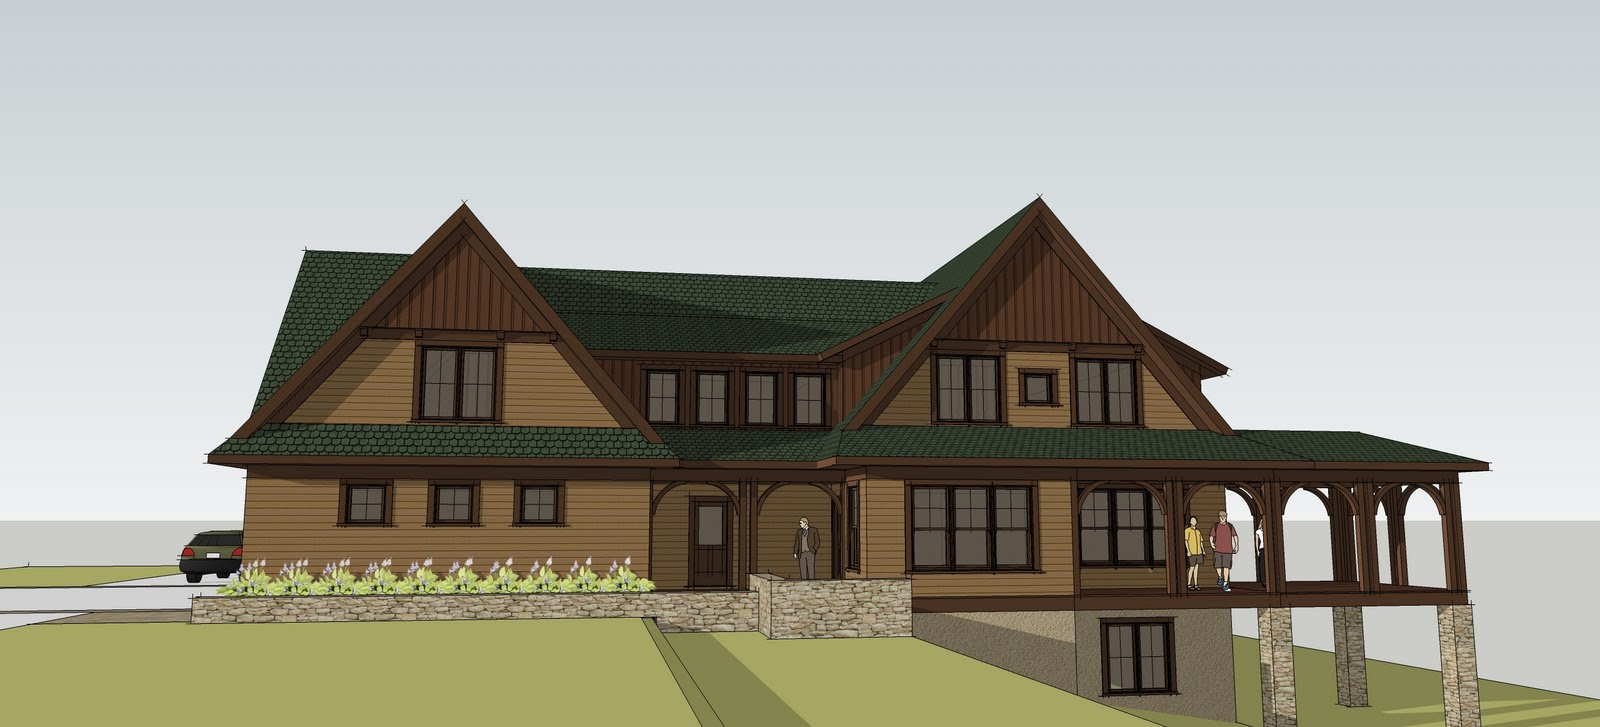 Luxury craftsman home custom craftsman home designs for Custom home layouts